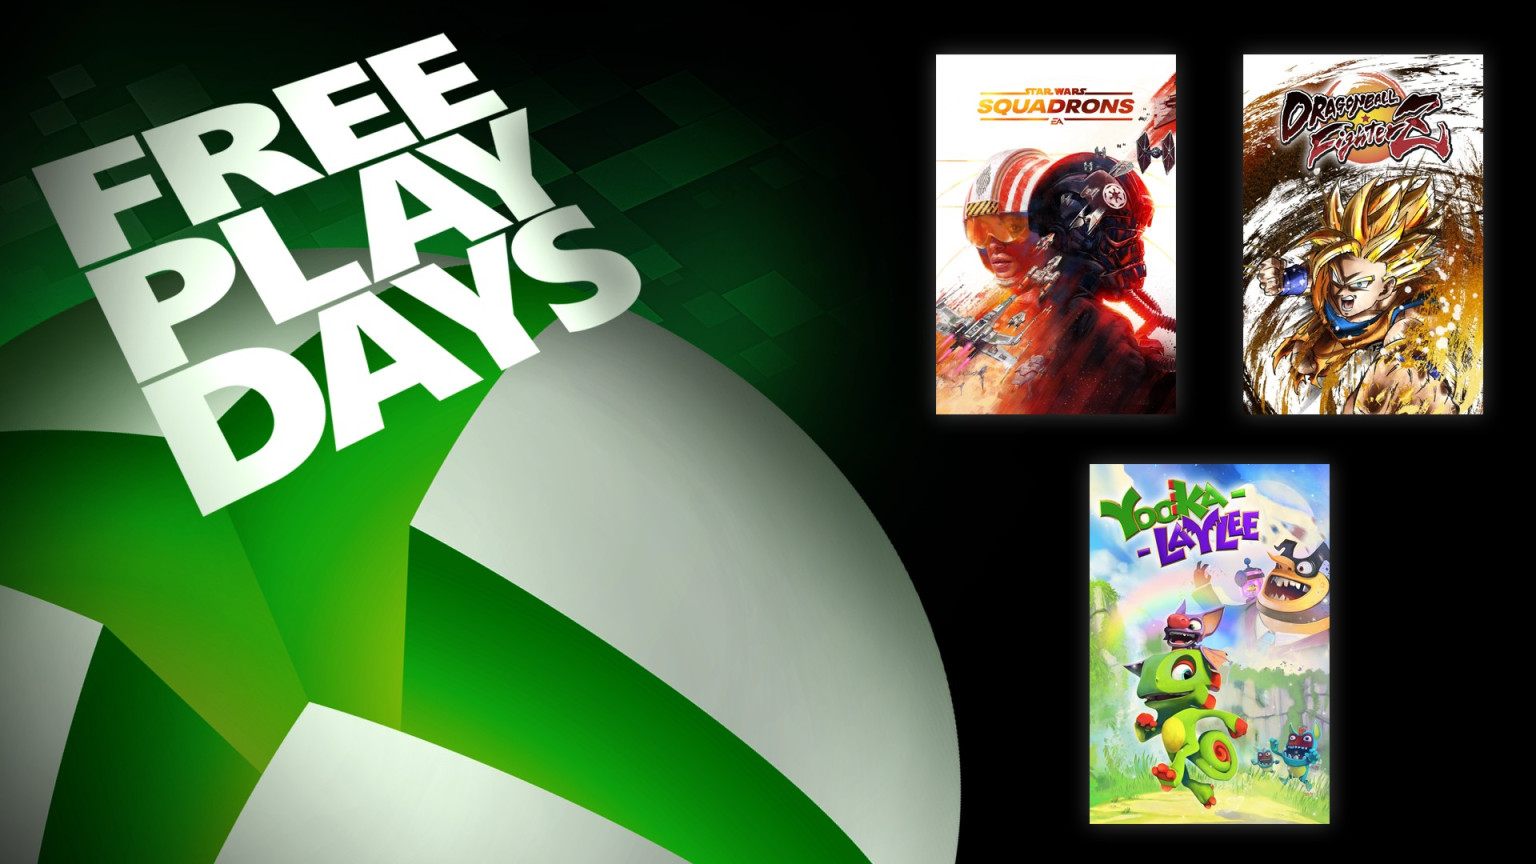 Xbox Live: You can play these three games for free on the weekend